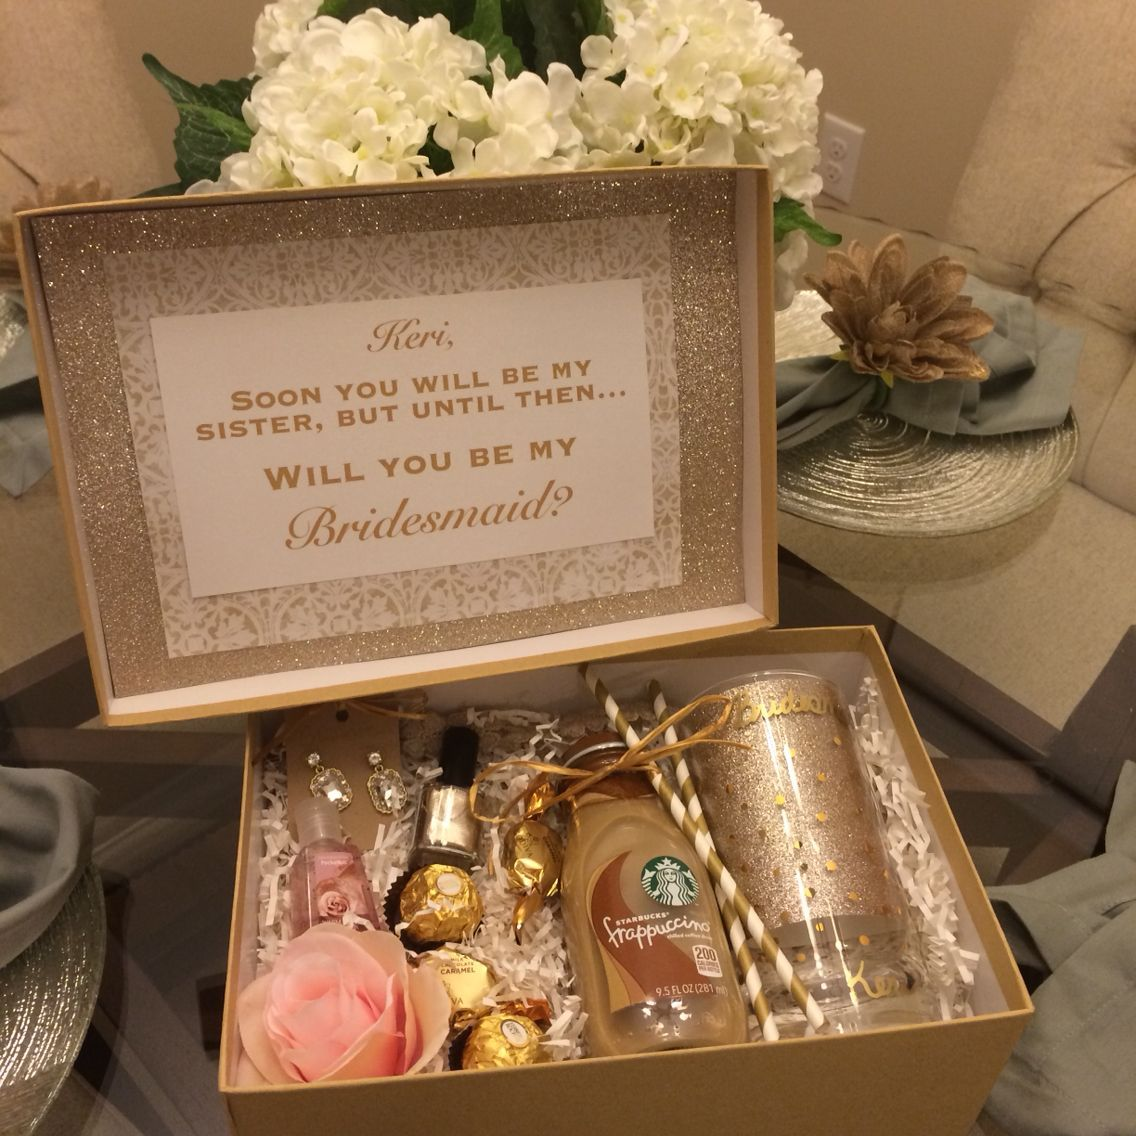 Pin by Kimberly Davis on Bridal shower Gifts for wedding